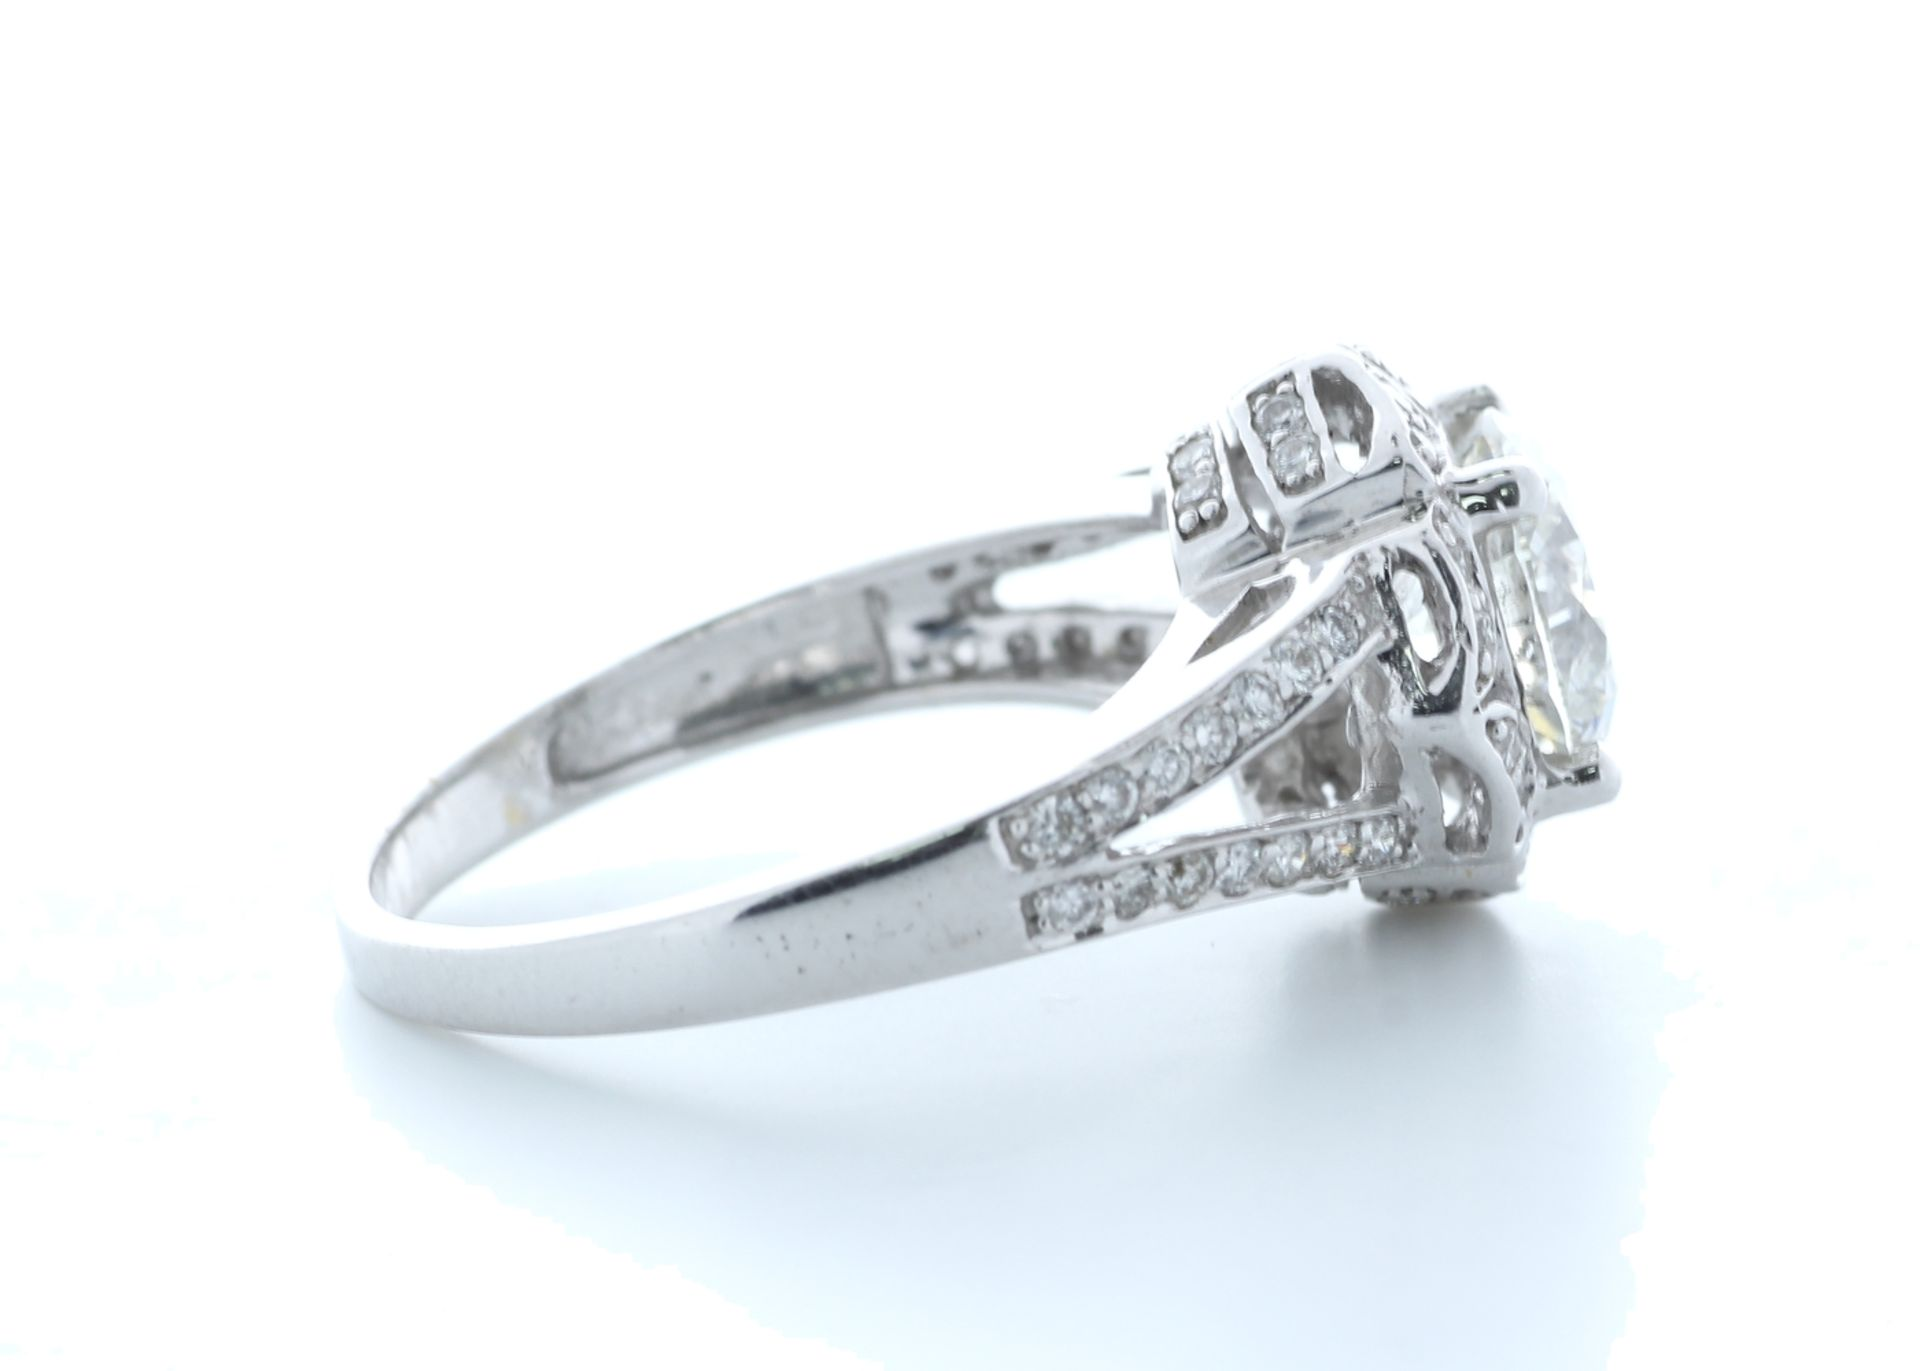 18ct White Gold Single Stone With Halo Setting Ring 2.06 (1.66) Carats - Valued by IDI £36,000. - Image 4 of 5